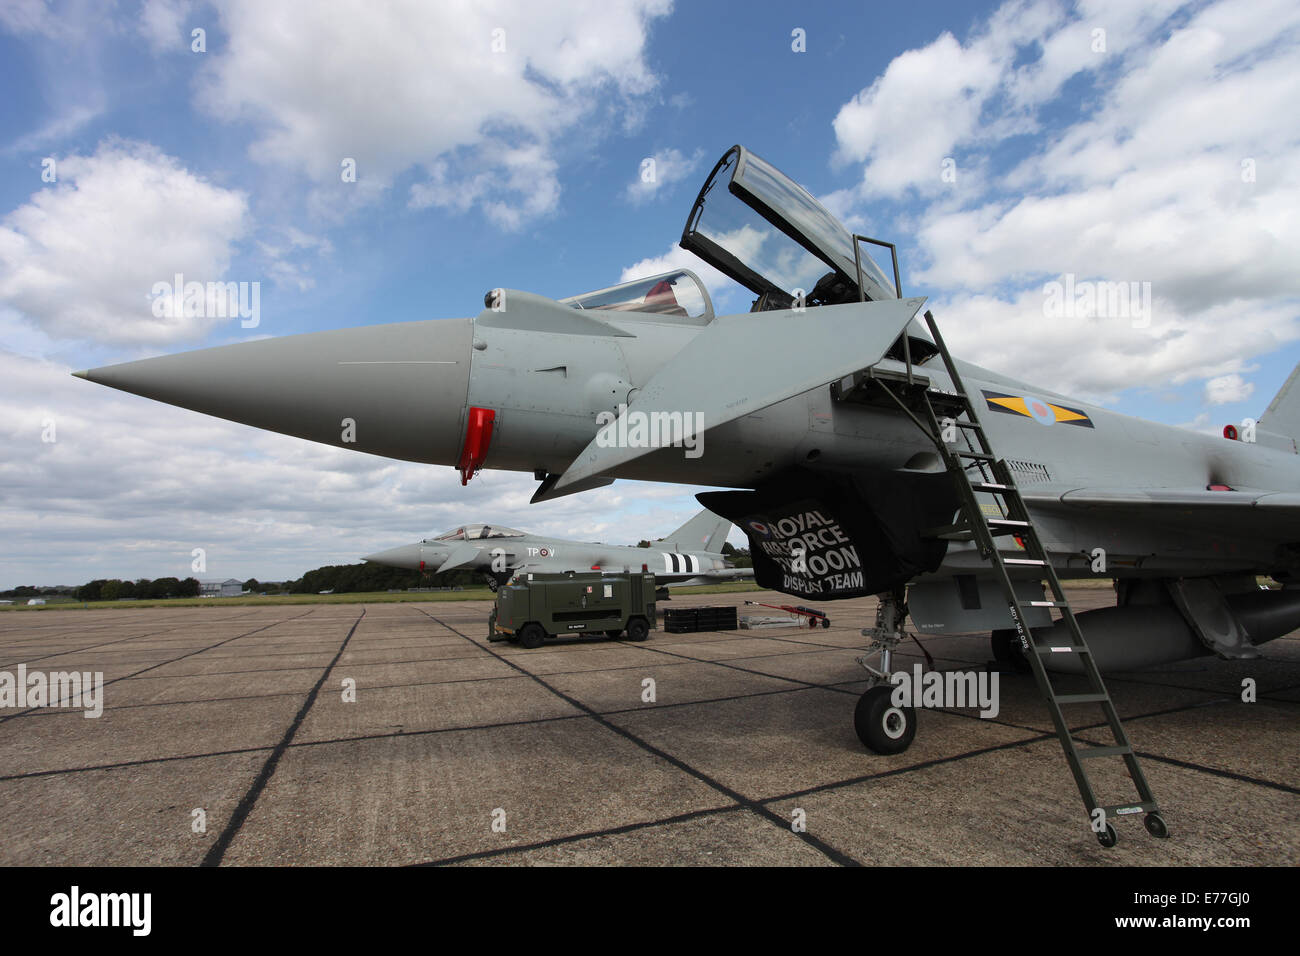 Two Eurofighters parked on the tarmac at Bigging Hill airport Stock Photo